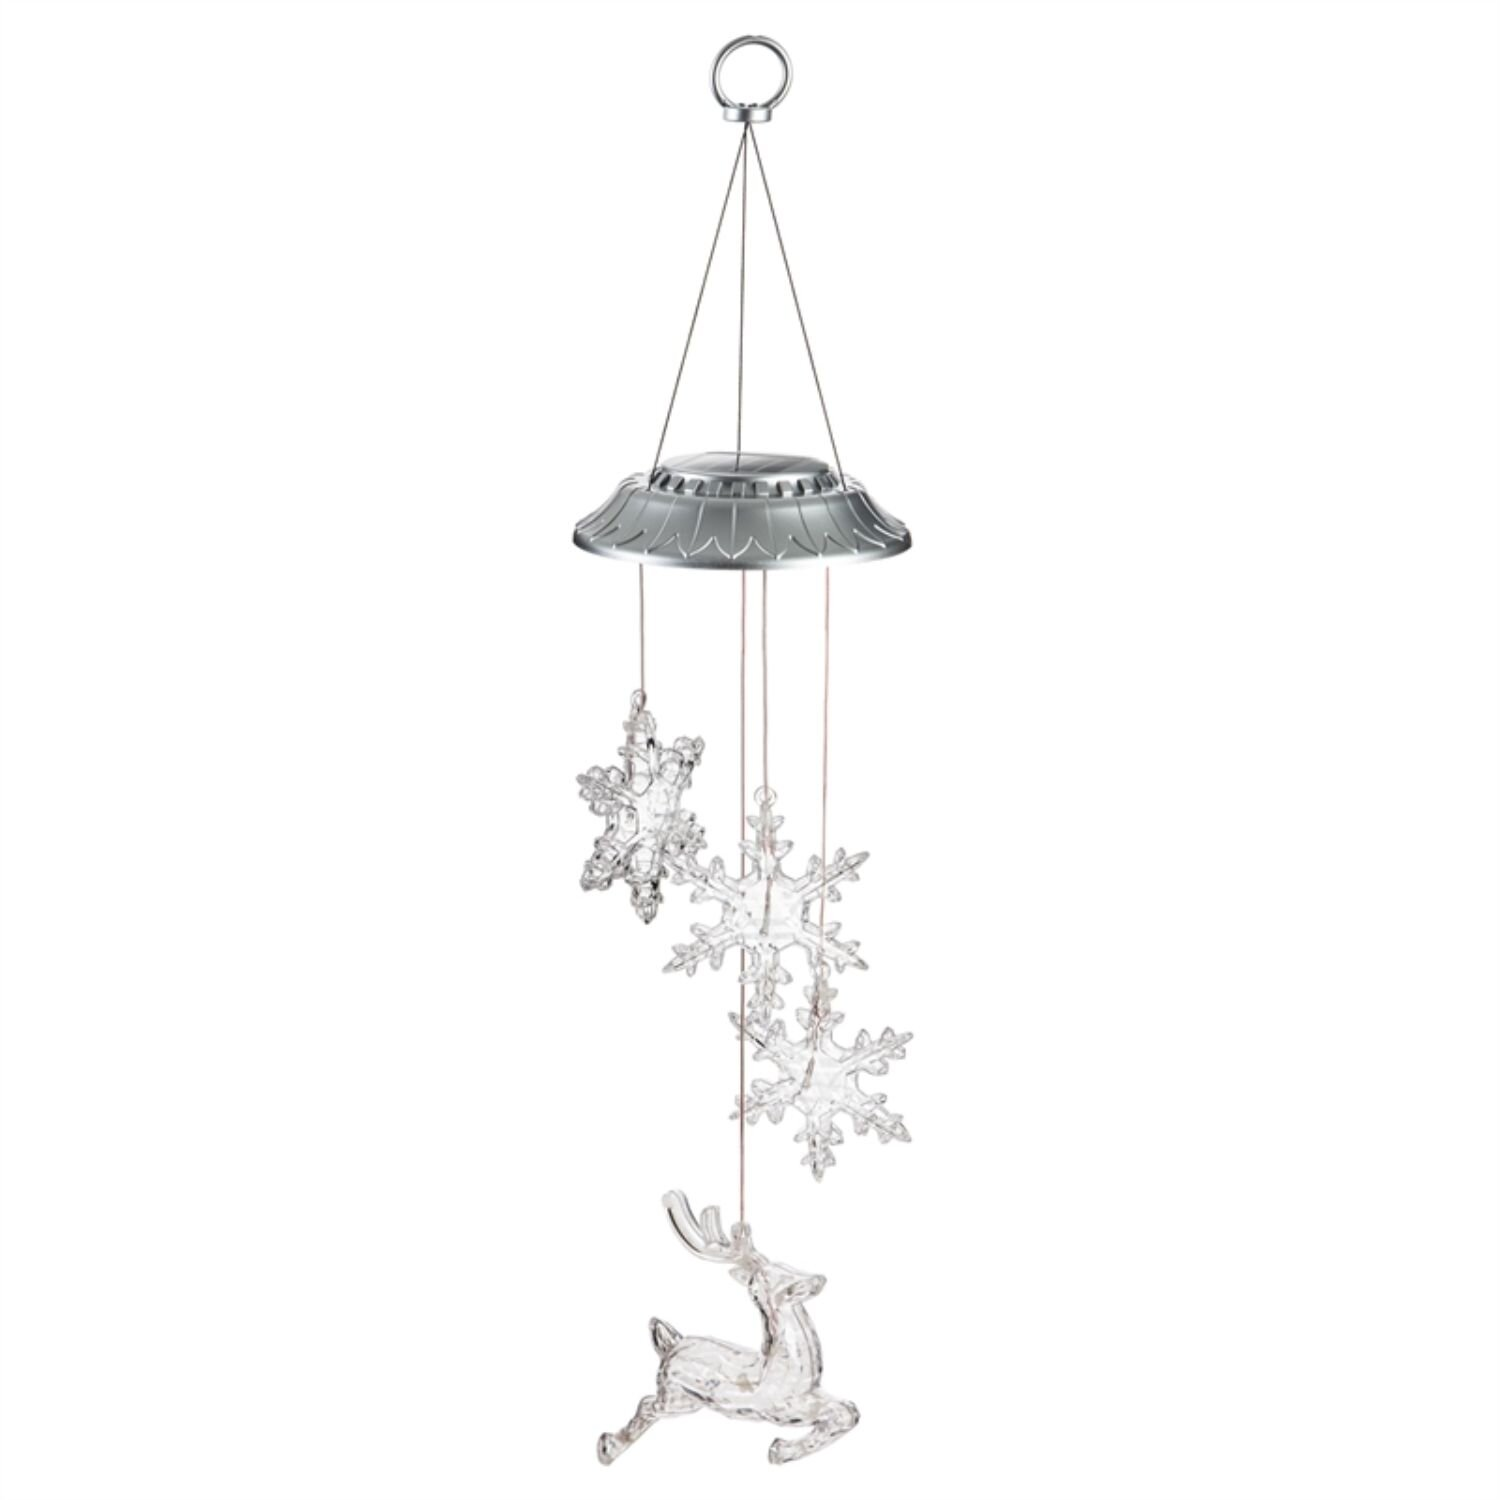 Hanging Reindeer Outdoor Holiday Decorations You Ll Love In 2021 Wayfair